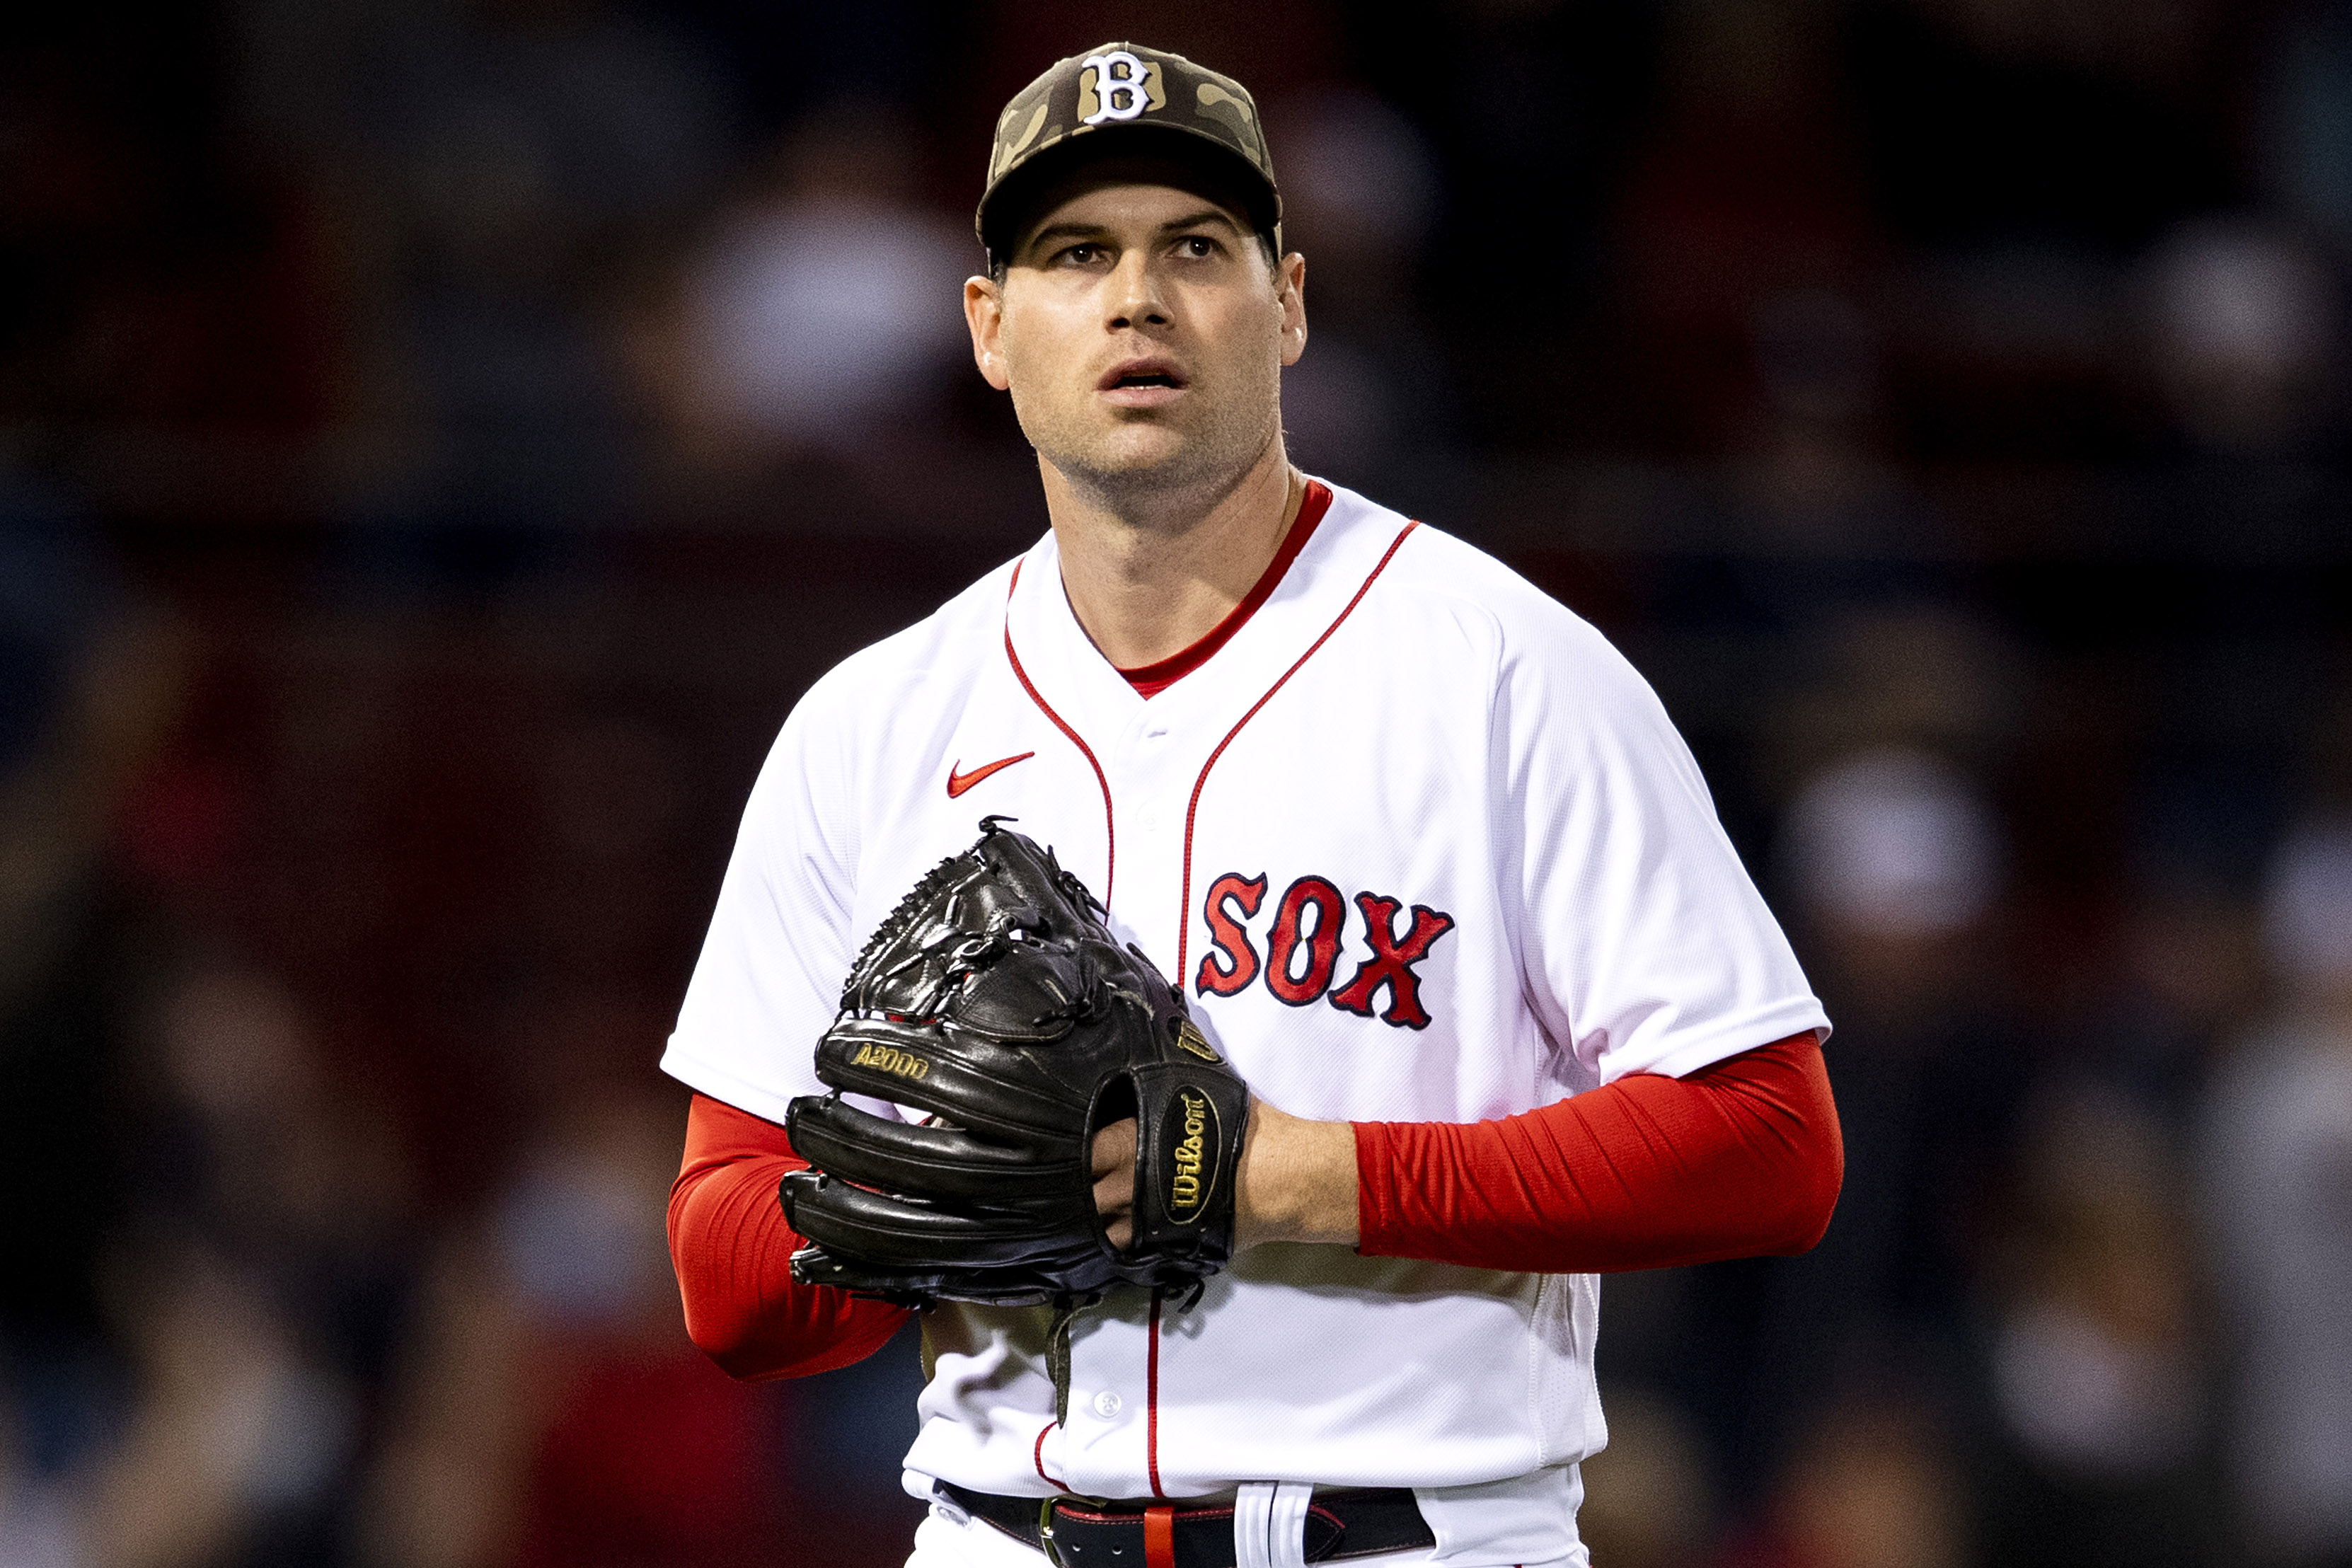 Adam Ottavino's Yankees problems have followed him to Red Sox